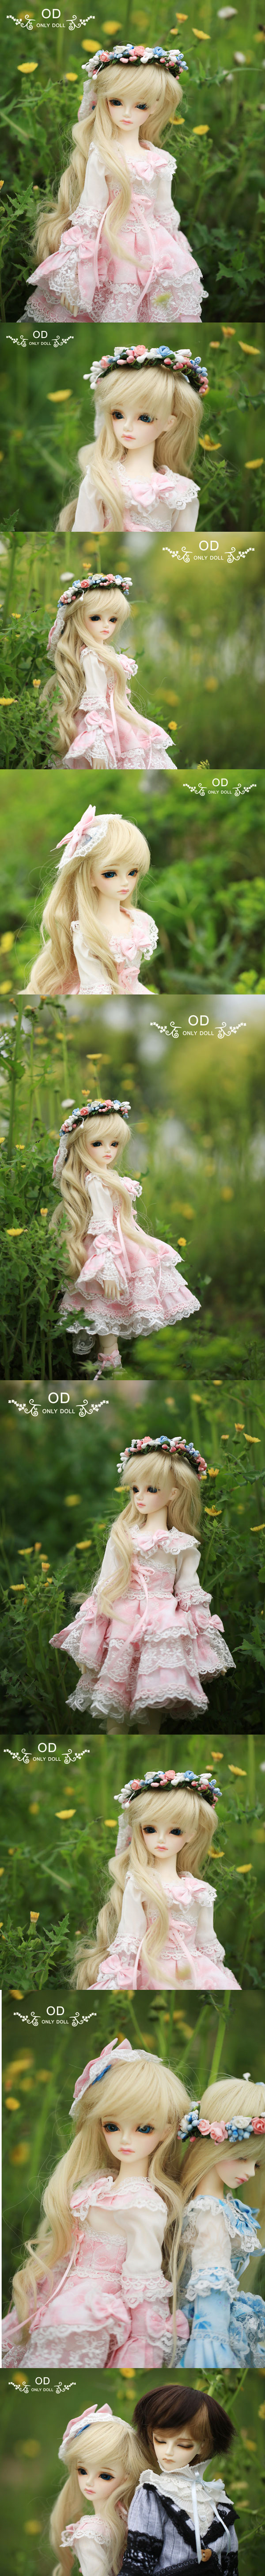 BJD Ting Girl 43cm Boll-jointed doll